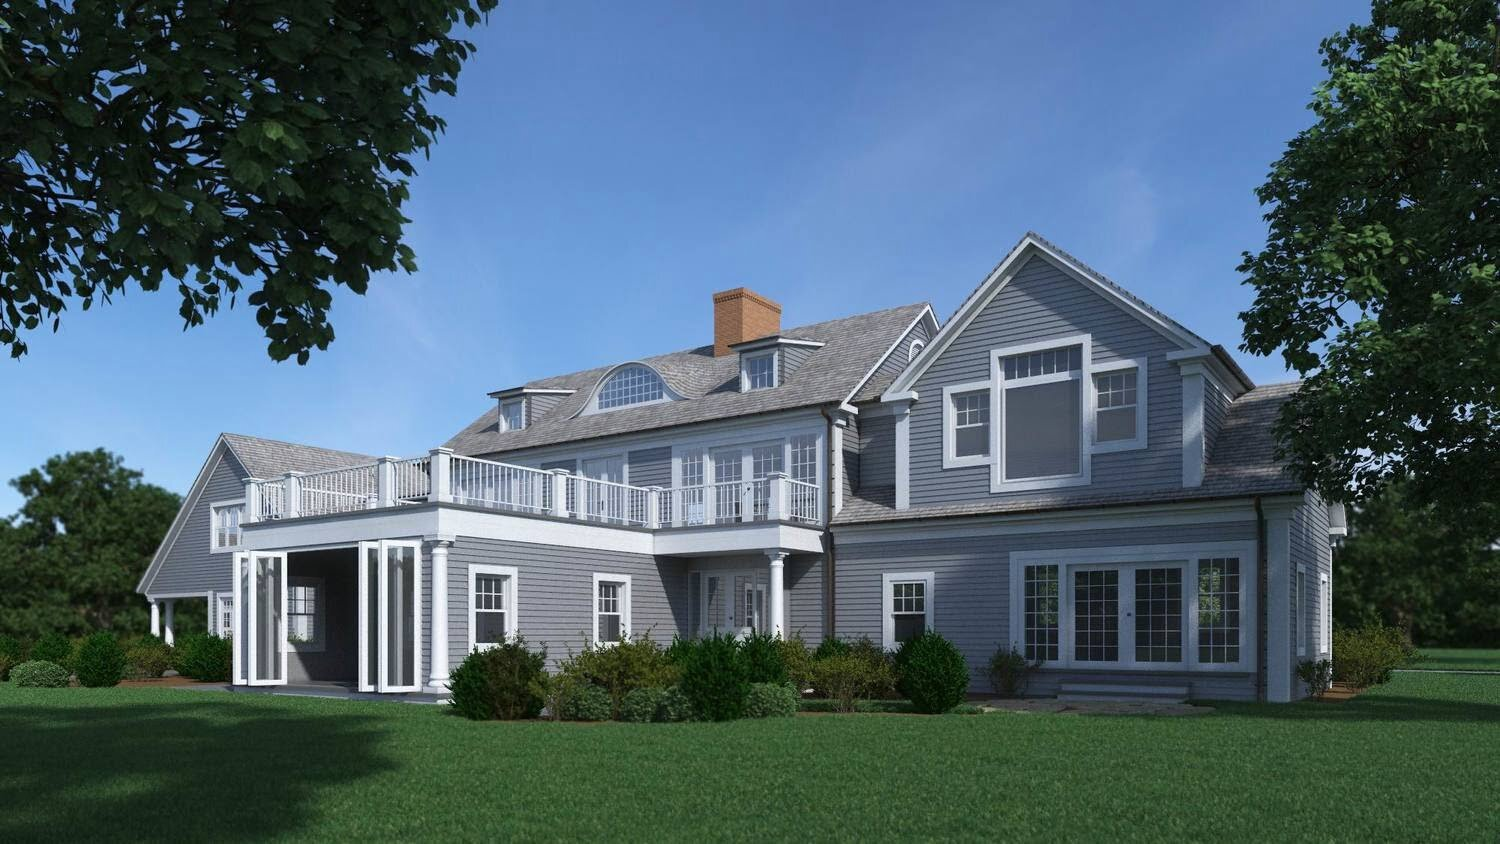 sa_1618913744_3d-home-rendering-service (1)